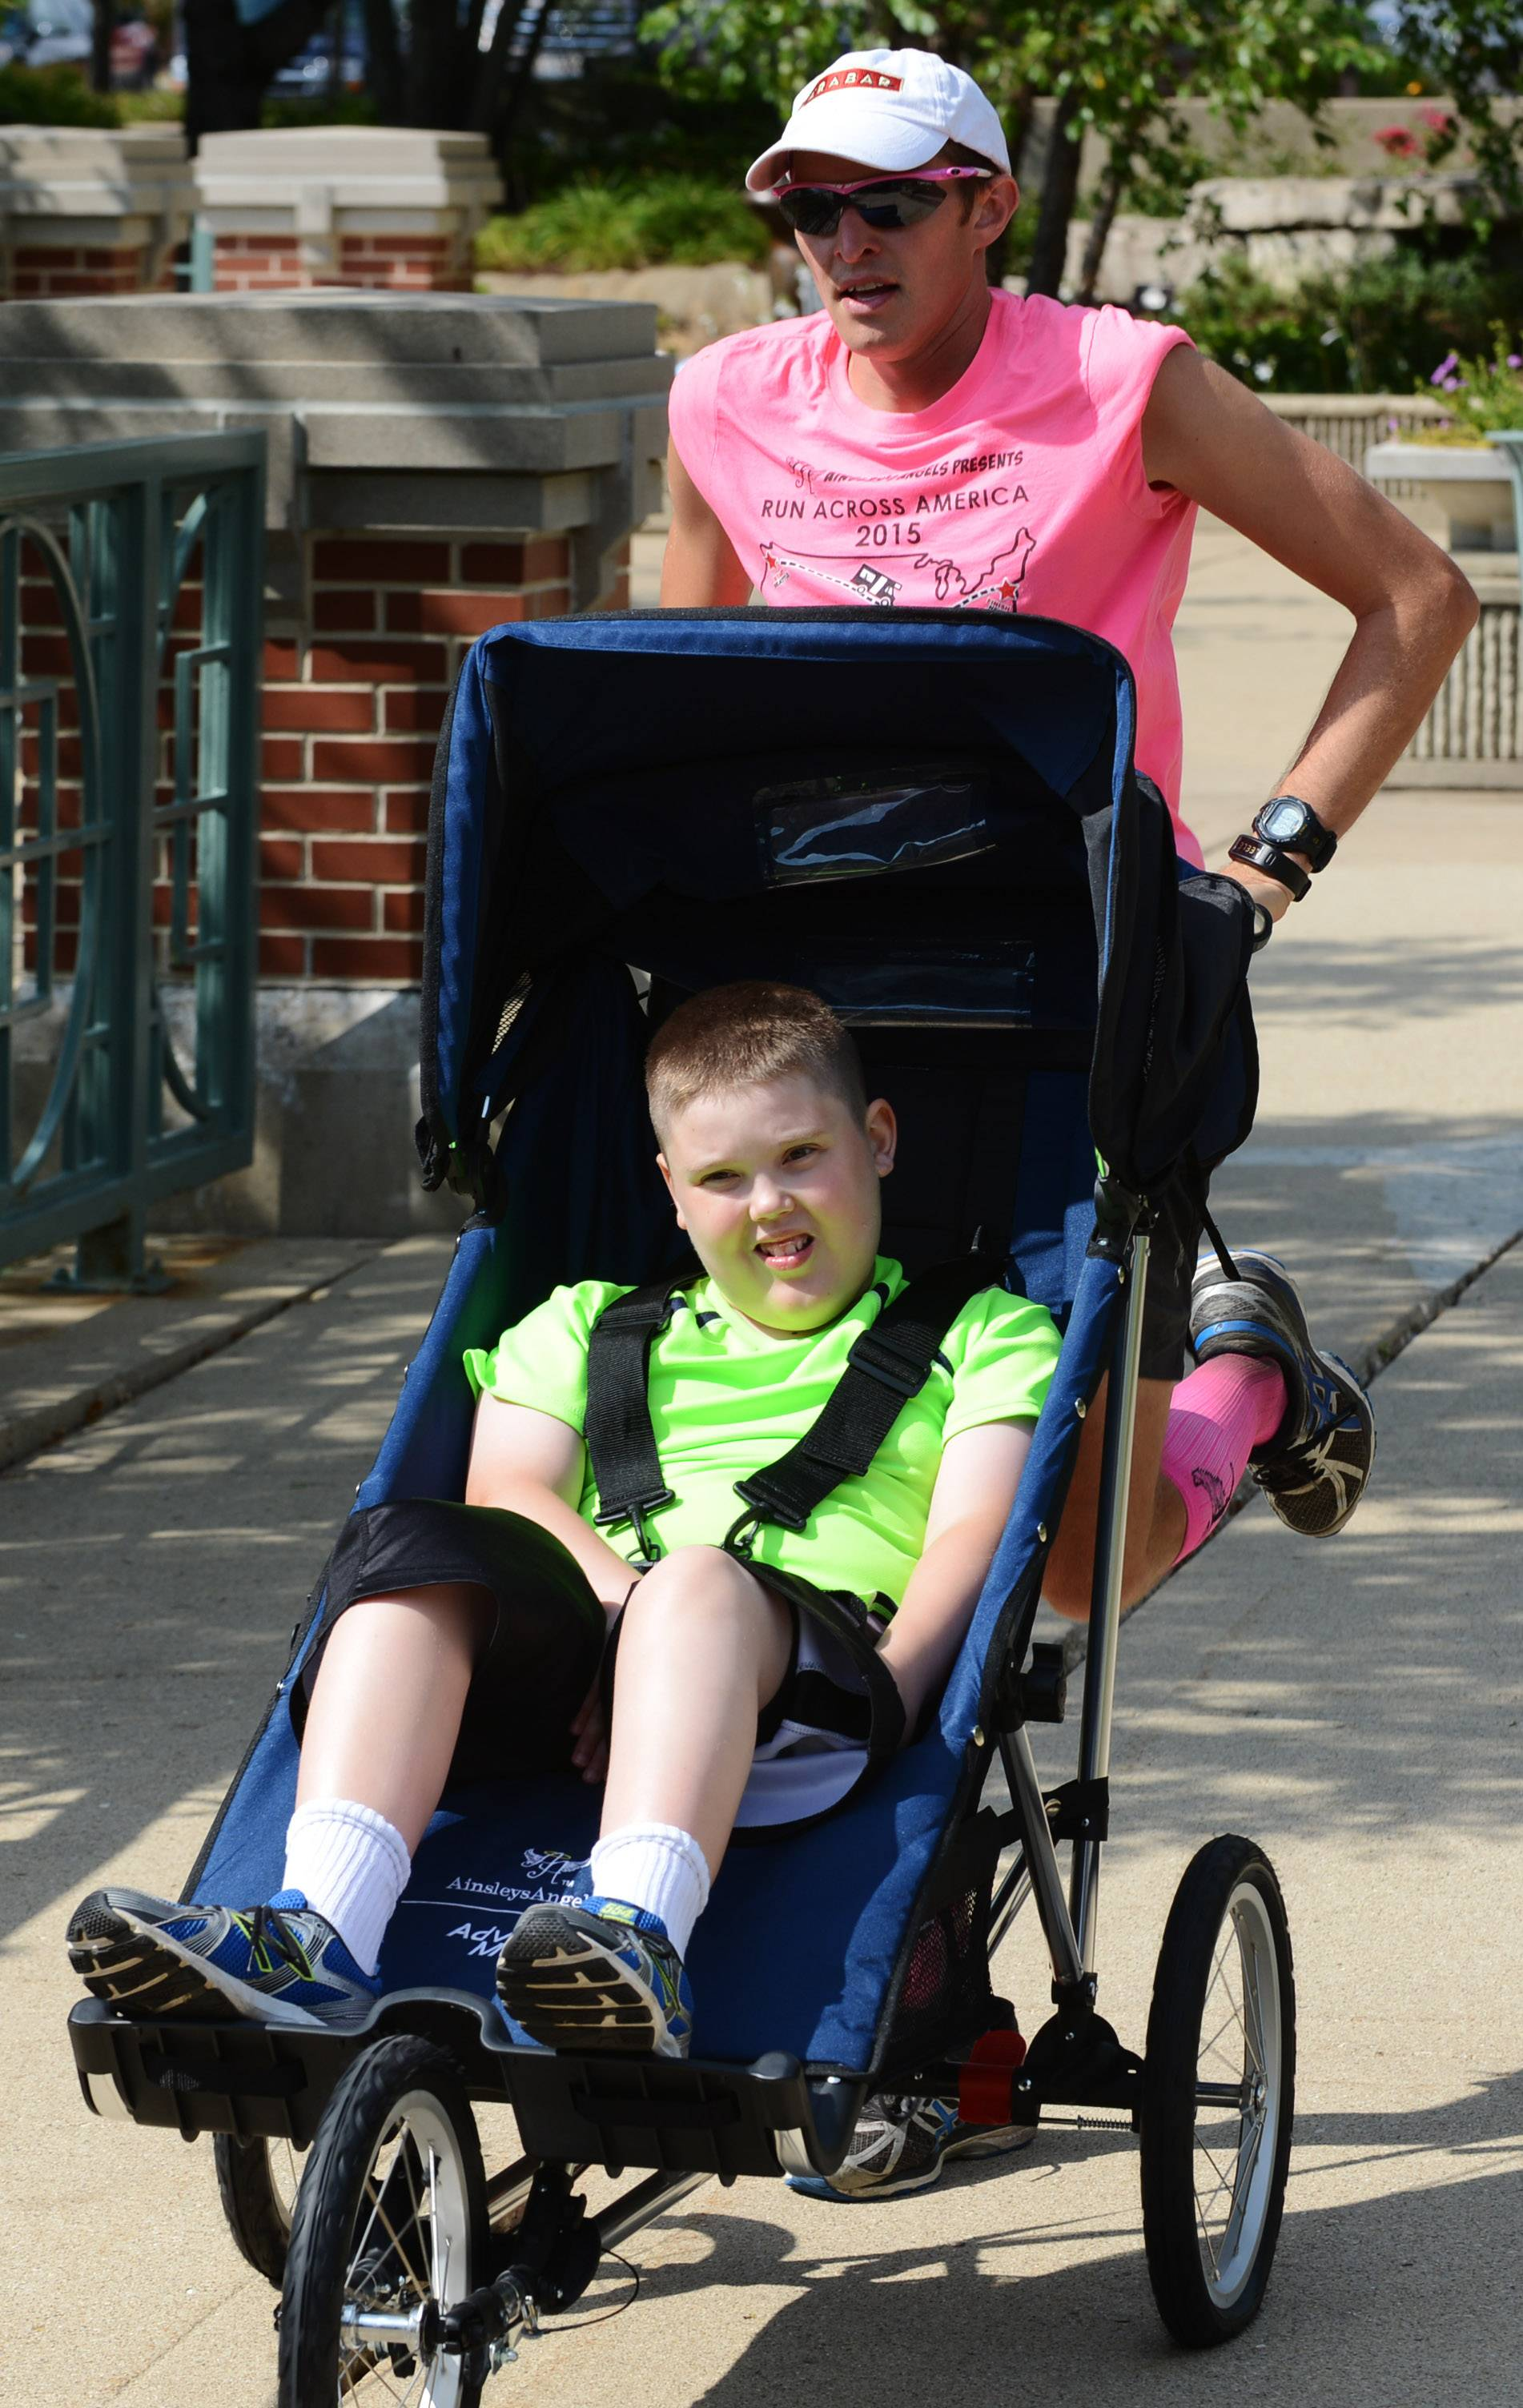 "Shaun Evans, pushes Alex Gorz, 12, of Midlothian, who has cerebral palsy and autism, on a trial spin in a running stroller, which he terms a ""freedom chariot."" Evans stopped in Schaumburg on Thursday during a 3,200-mile run across 15 states while pushing his 9-year old son Shamus, who has cerebral palsy, in a running stroller."